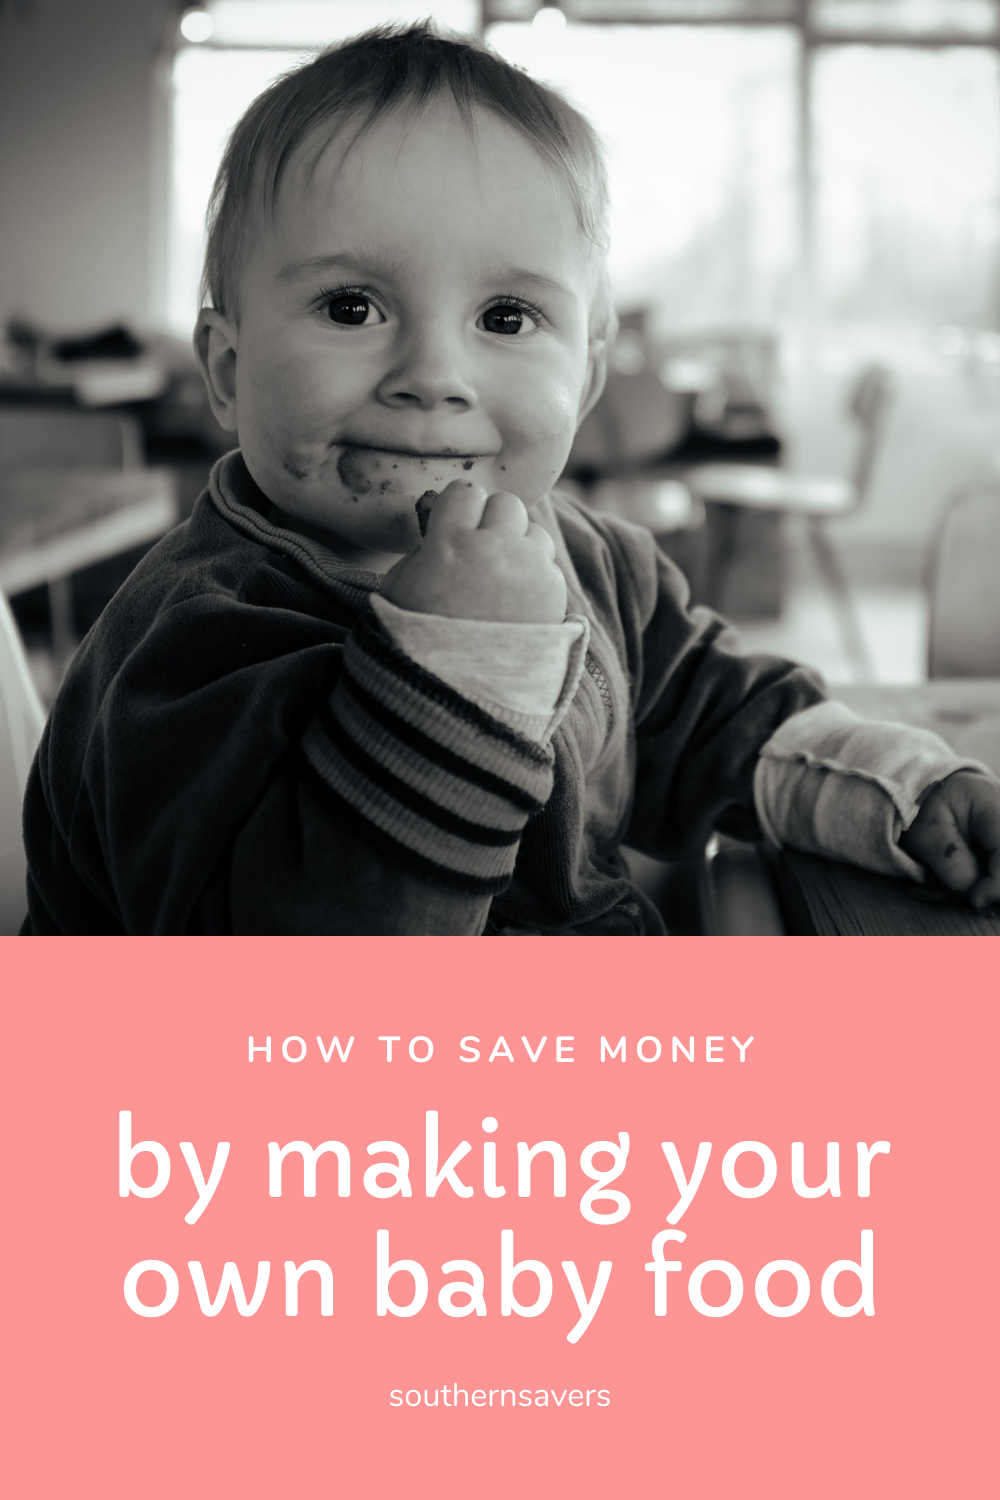 Making baby food from scratch might sound like a lot of work, but when you consider that most babies have a small diet, it's not too hard. Making several batches of baby food to put up in the freezer can be a big time and money saver.